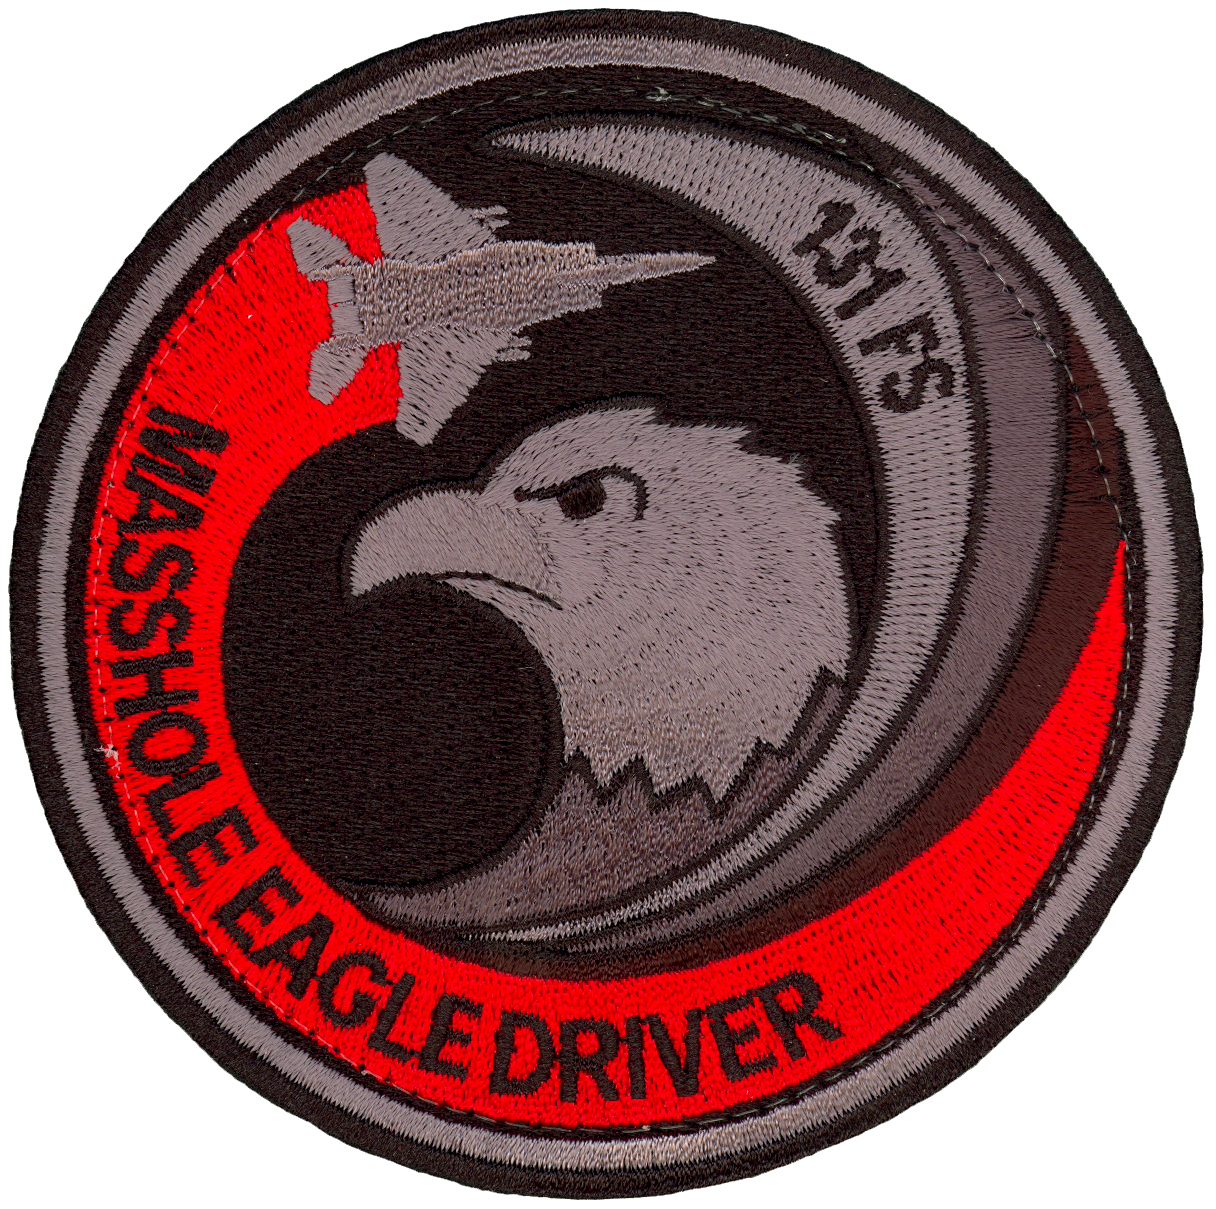 131st Fighter Squadron Patch